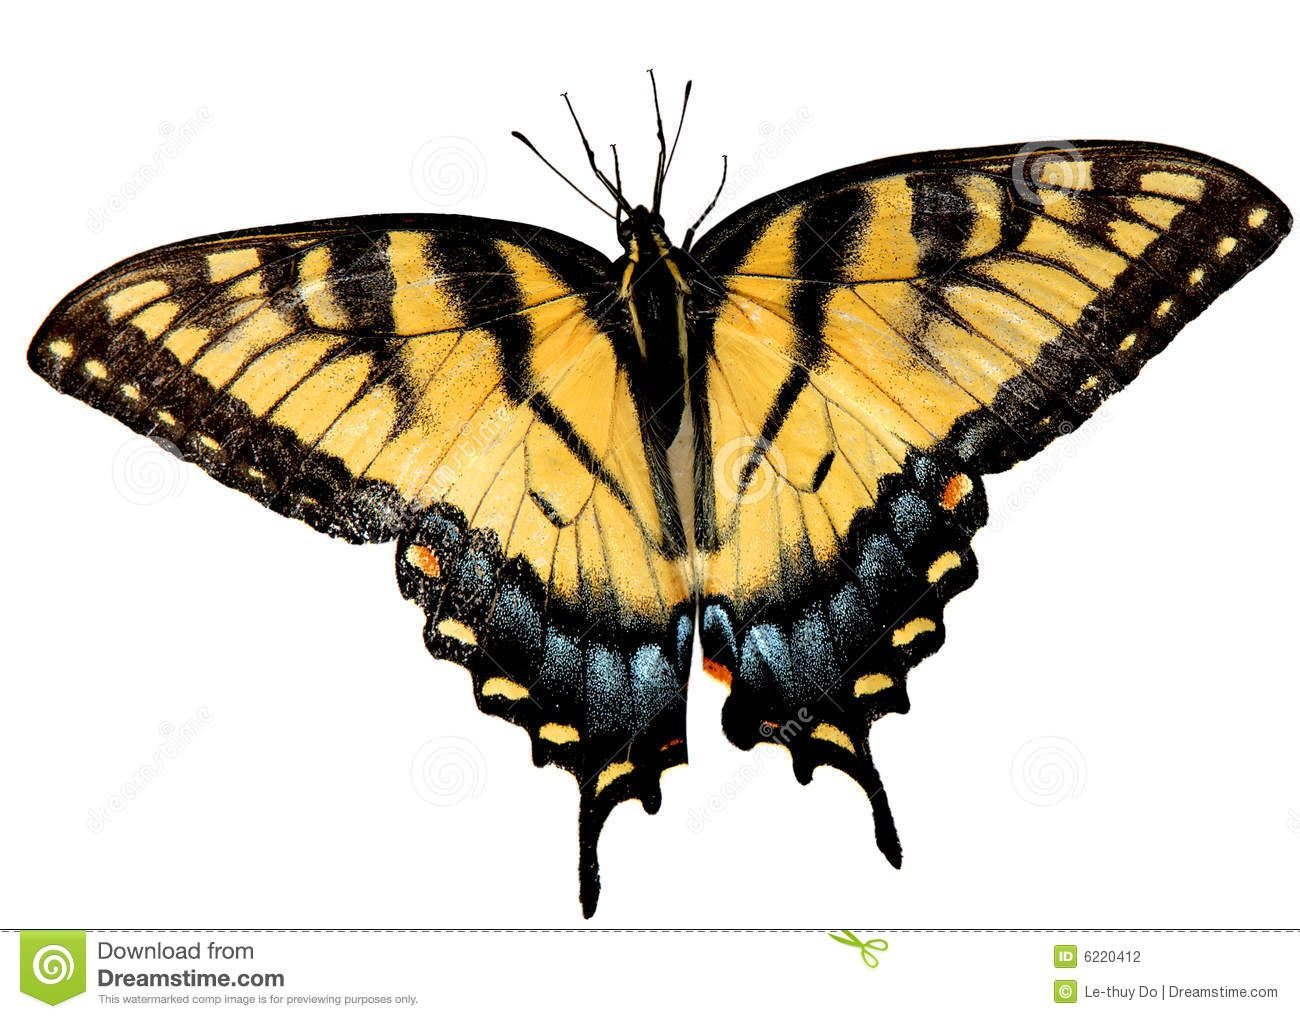 Easter Tiger Swallowtail Butterfly Download From Over 36 Million High Quality Stock Photos Images Vectors Sign Swallowtail Butterfly Swallowtail Butterfly